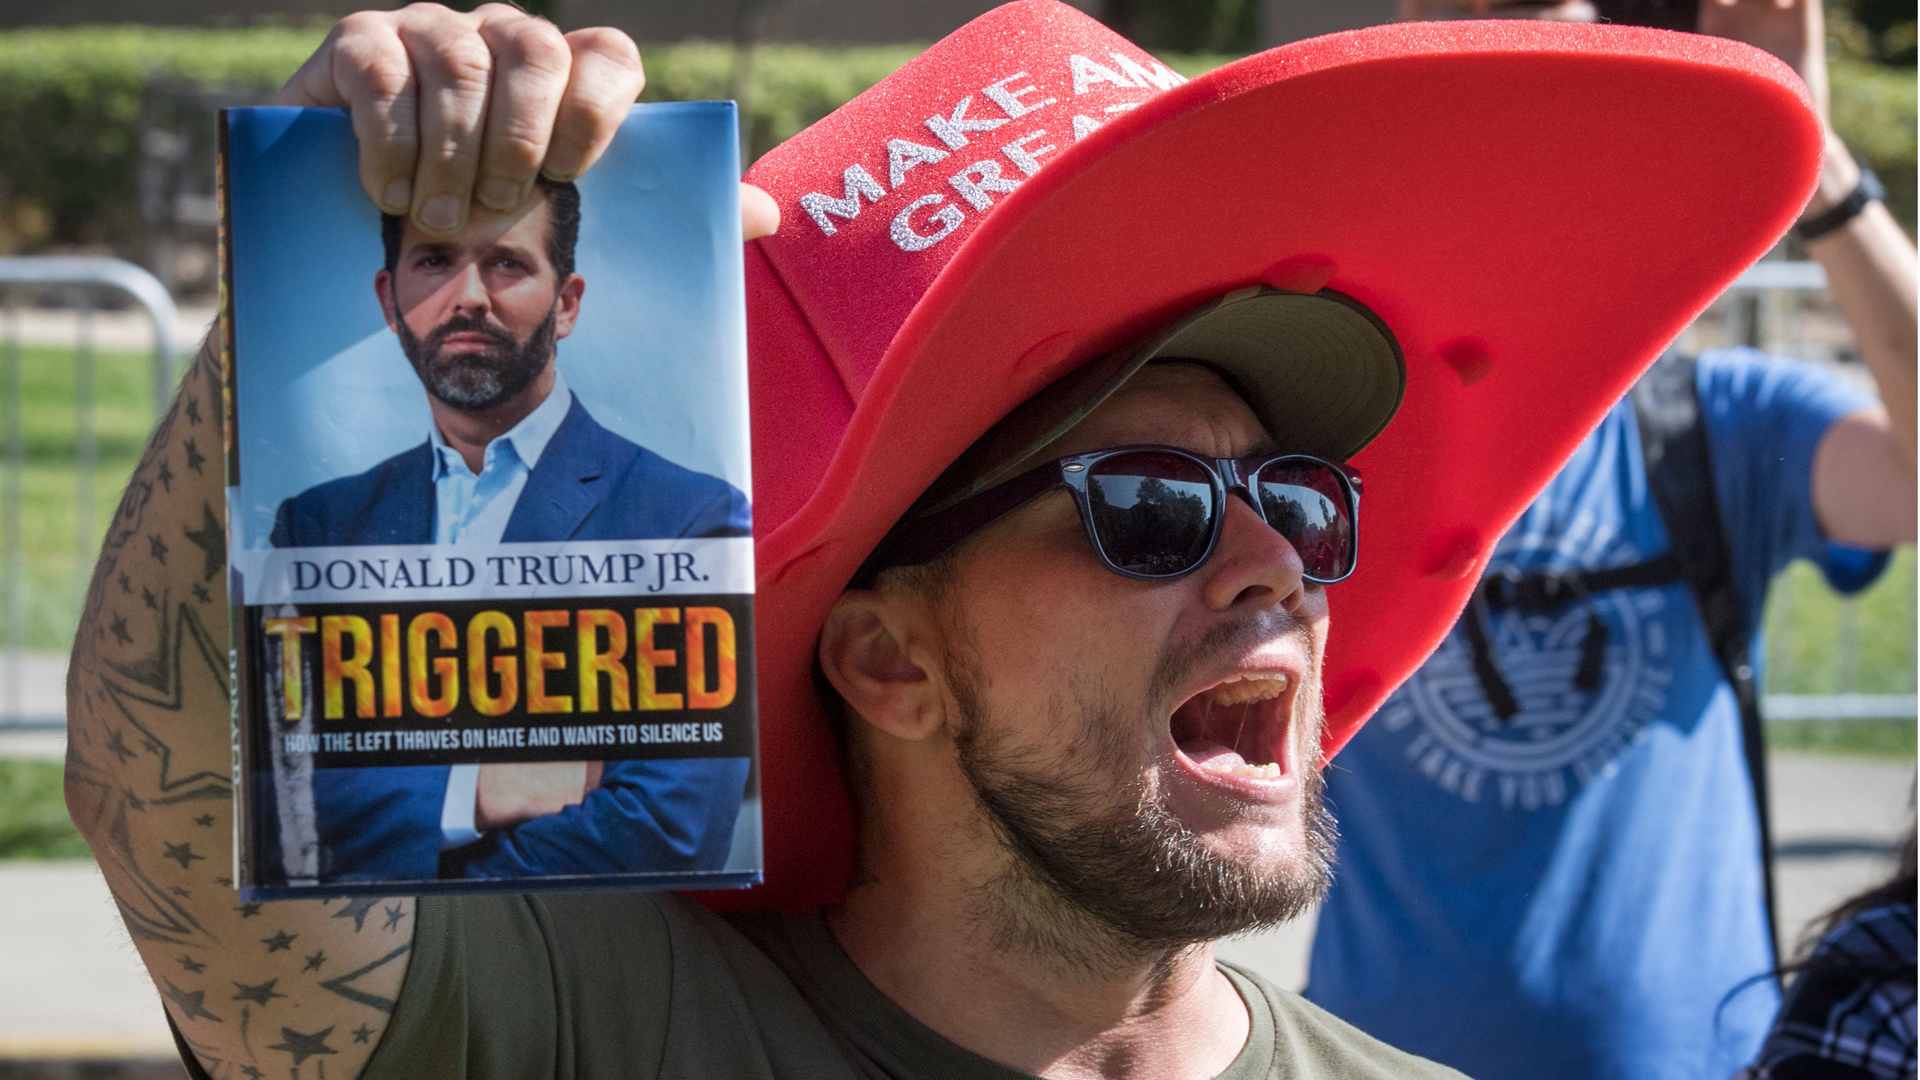 A supporter of President Trump yells at counter protesters outside a book promotion by Donald Trump Jr. at the UCLA campus in Westwood on November 10, 2019. (Credit: MARK RALSTON/AFP via Getty Images)